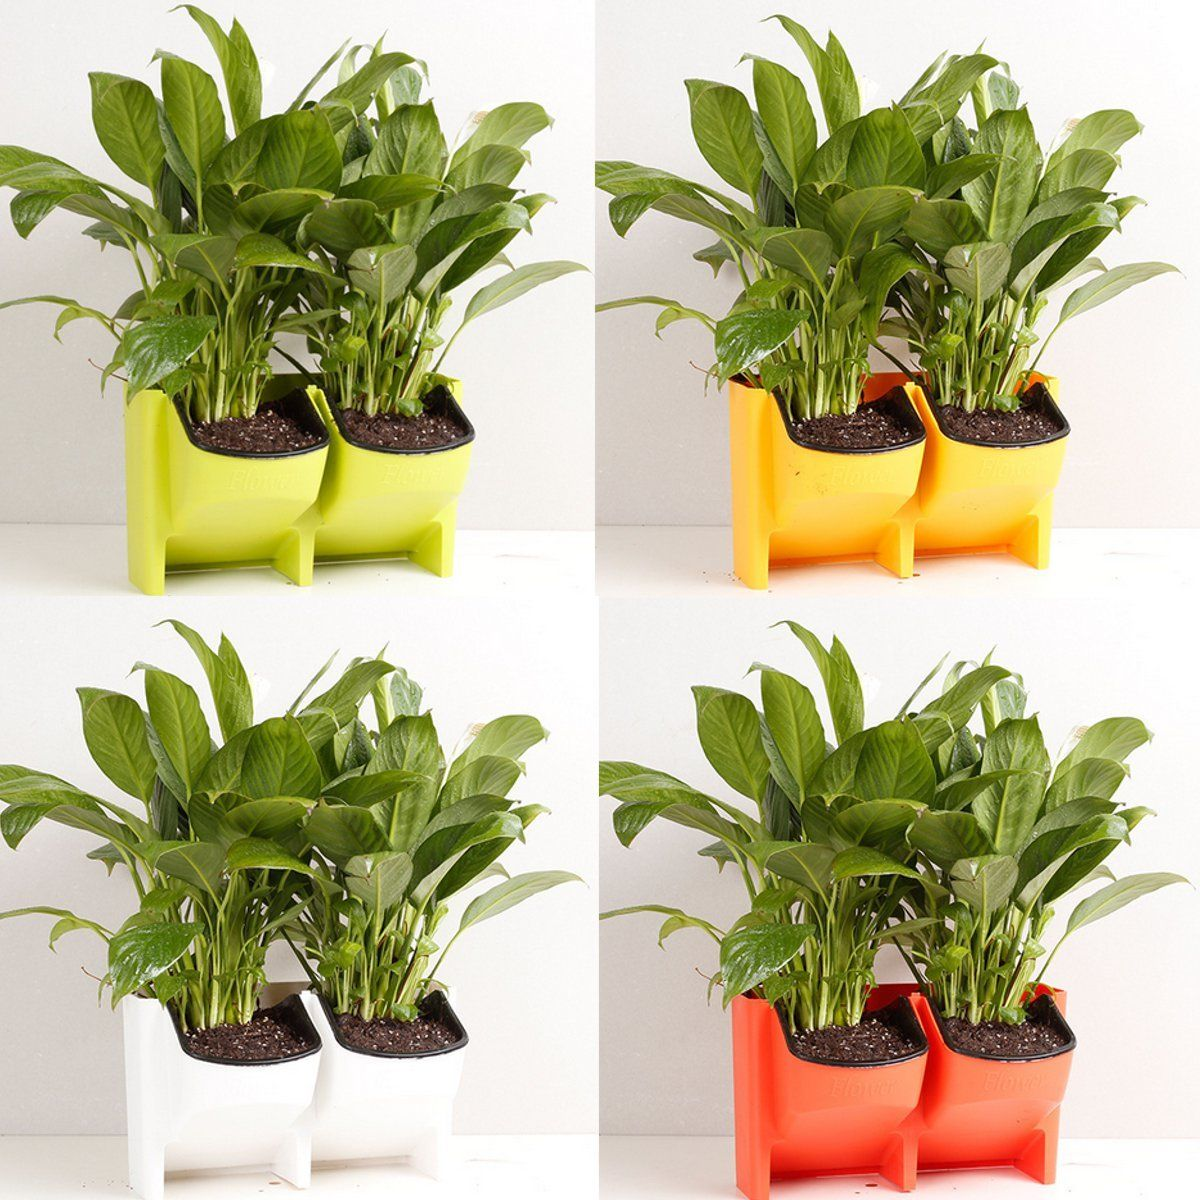 2-Pocket Vertical Wall Planter Self Watering Hanging Flower Pot ...